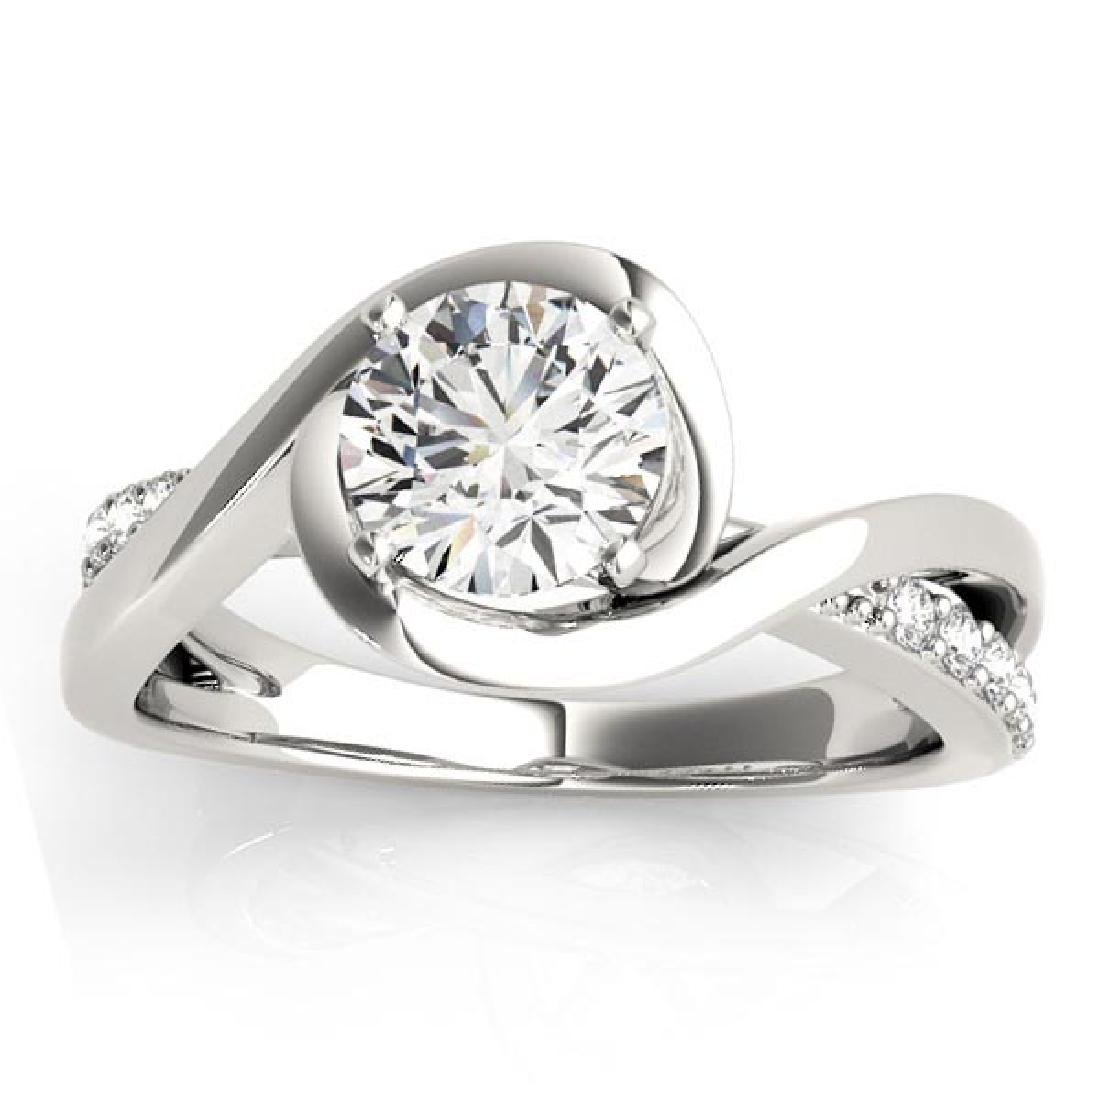 Diamond Bypass Engagement Ring in 14k White Gold 1.38ct